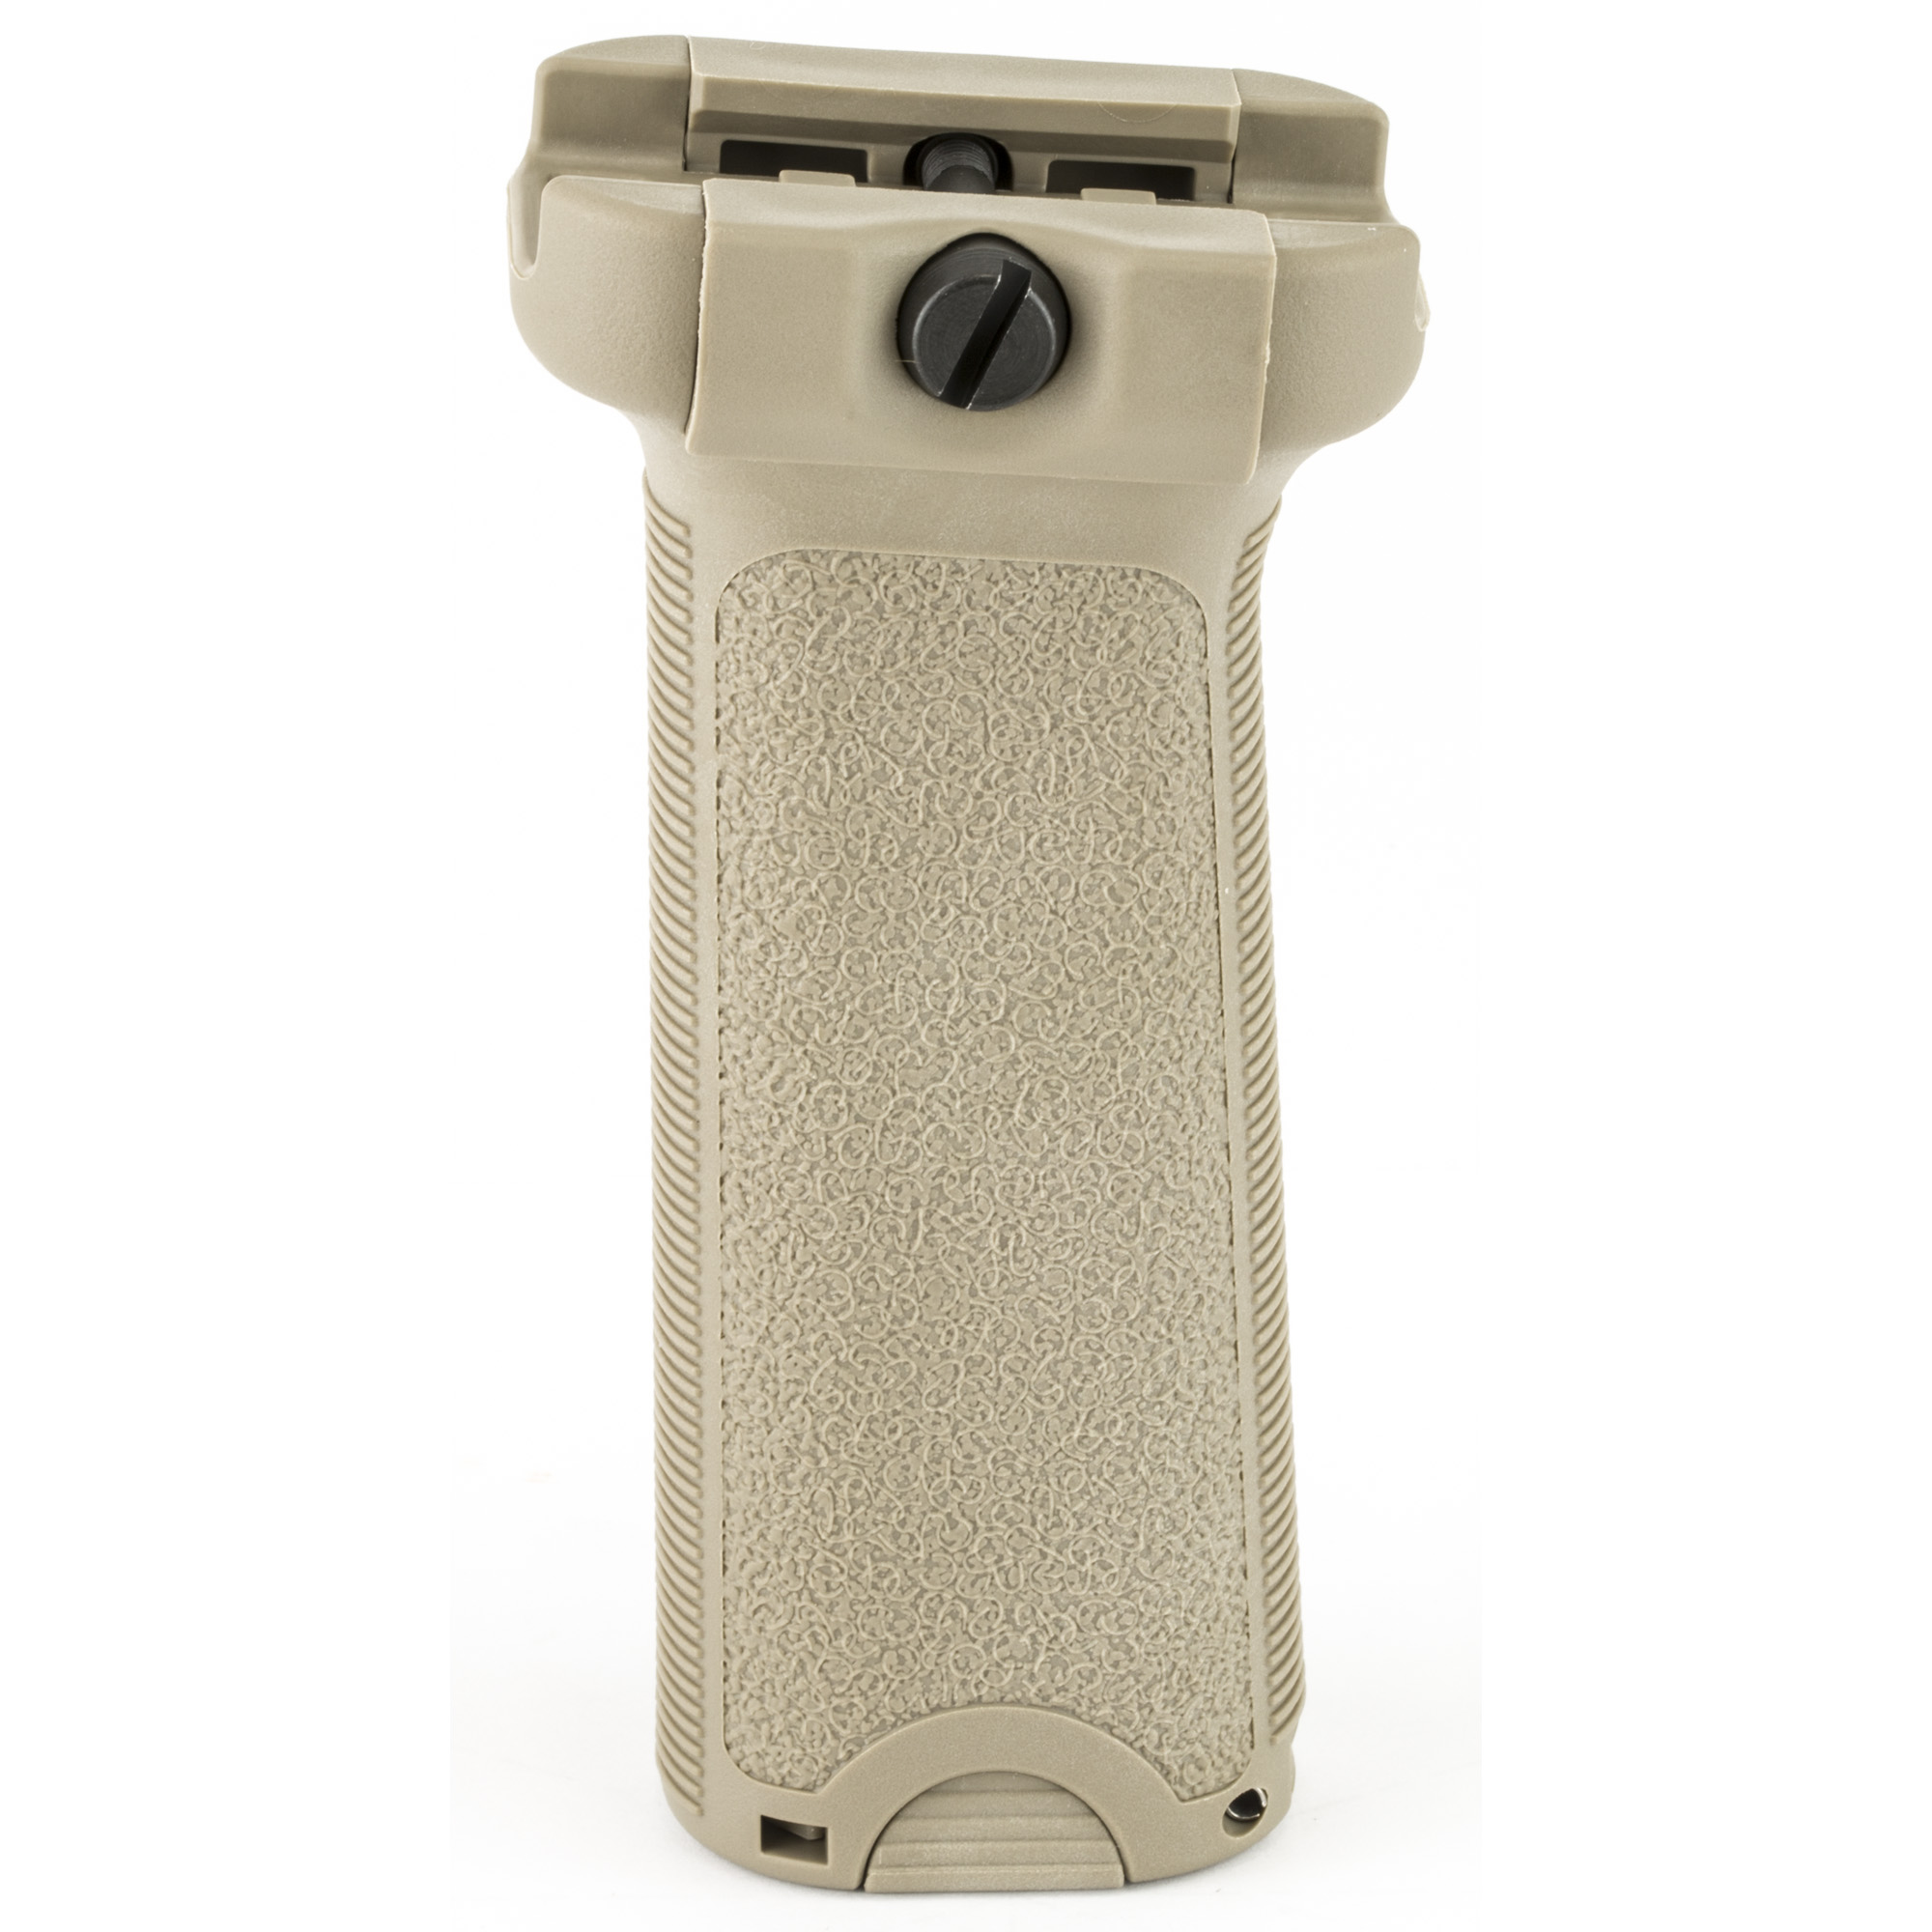 """Bravo Company's BCMGUNFIGHTER Vertical Forend Grip fits AR rifles. When mounted in a forward angle it increases rigidity of forearm"""" while providing a more natural wrist angle when grabbing the vertical grip. When mounted in a reverse angle it increases your control when grabbing handguard and vertical grip. The flat sides give better yaw control to the shooter during firing and non-firing manipulations. The aggressive texture and generous storage volume"""" combined with its modular design"""" allow for improvements and adaptation in the future. It is cross bolt designed to work with improvised tools (such as a quarter) to allow for easy adjustment or re-tightening. The reversible clamps allow user to setup fasteners to reside on either side and the spring- loaded clamp makes installation and removal easier."""